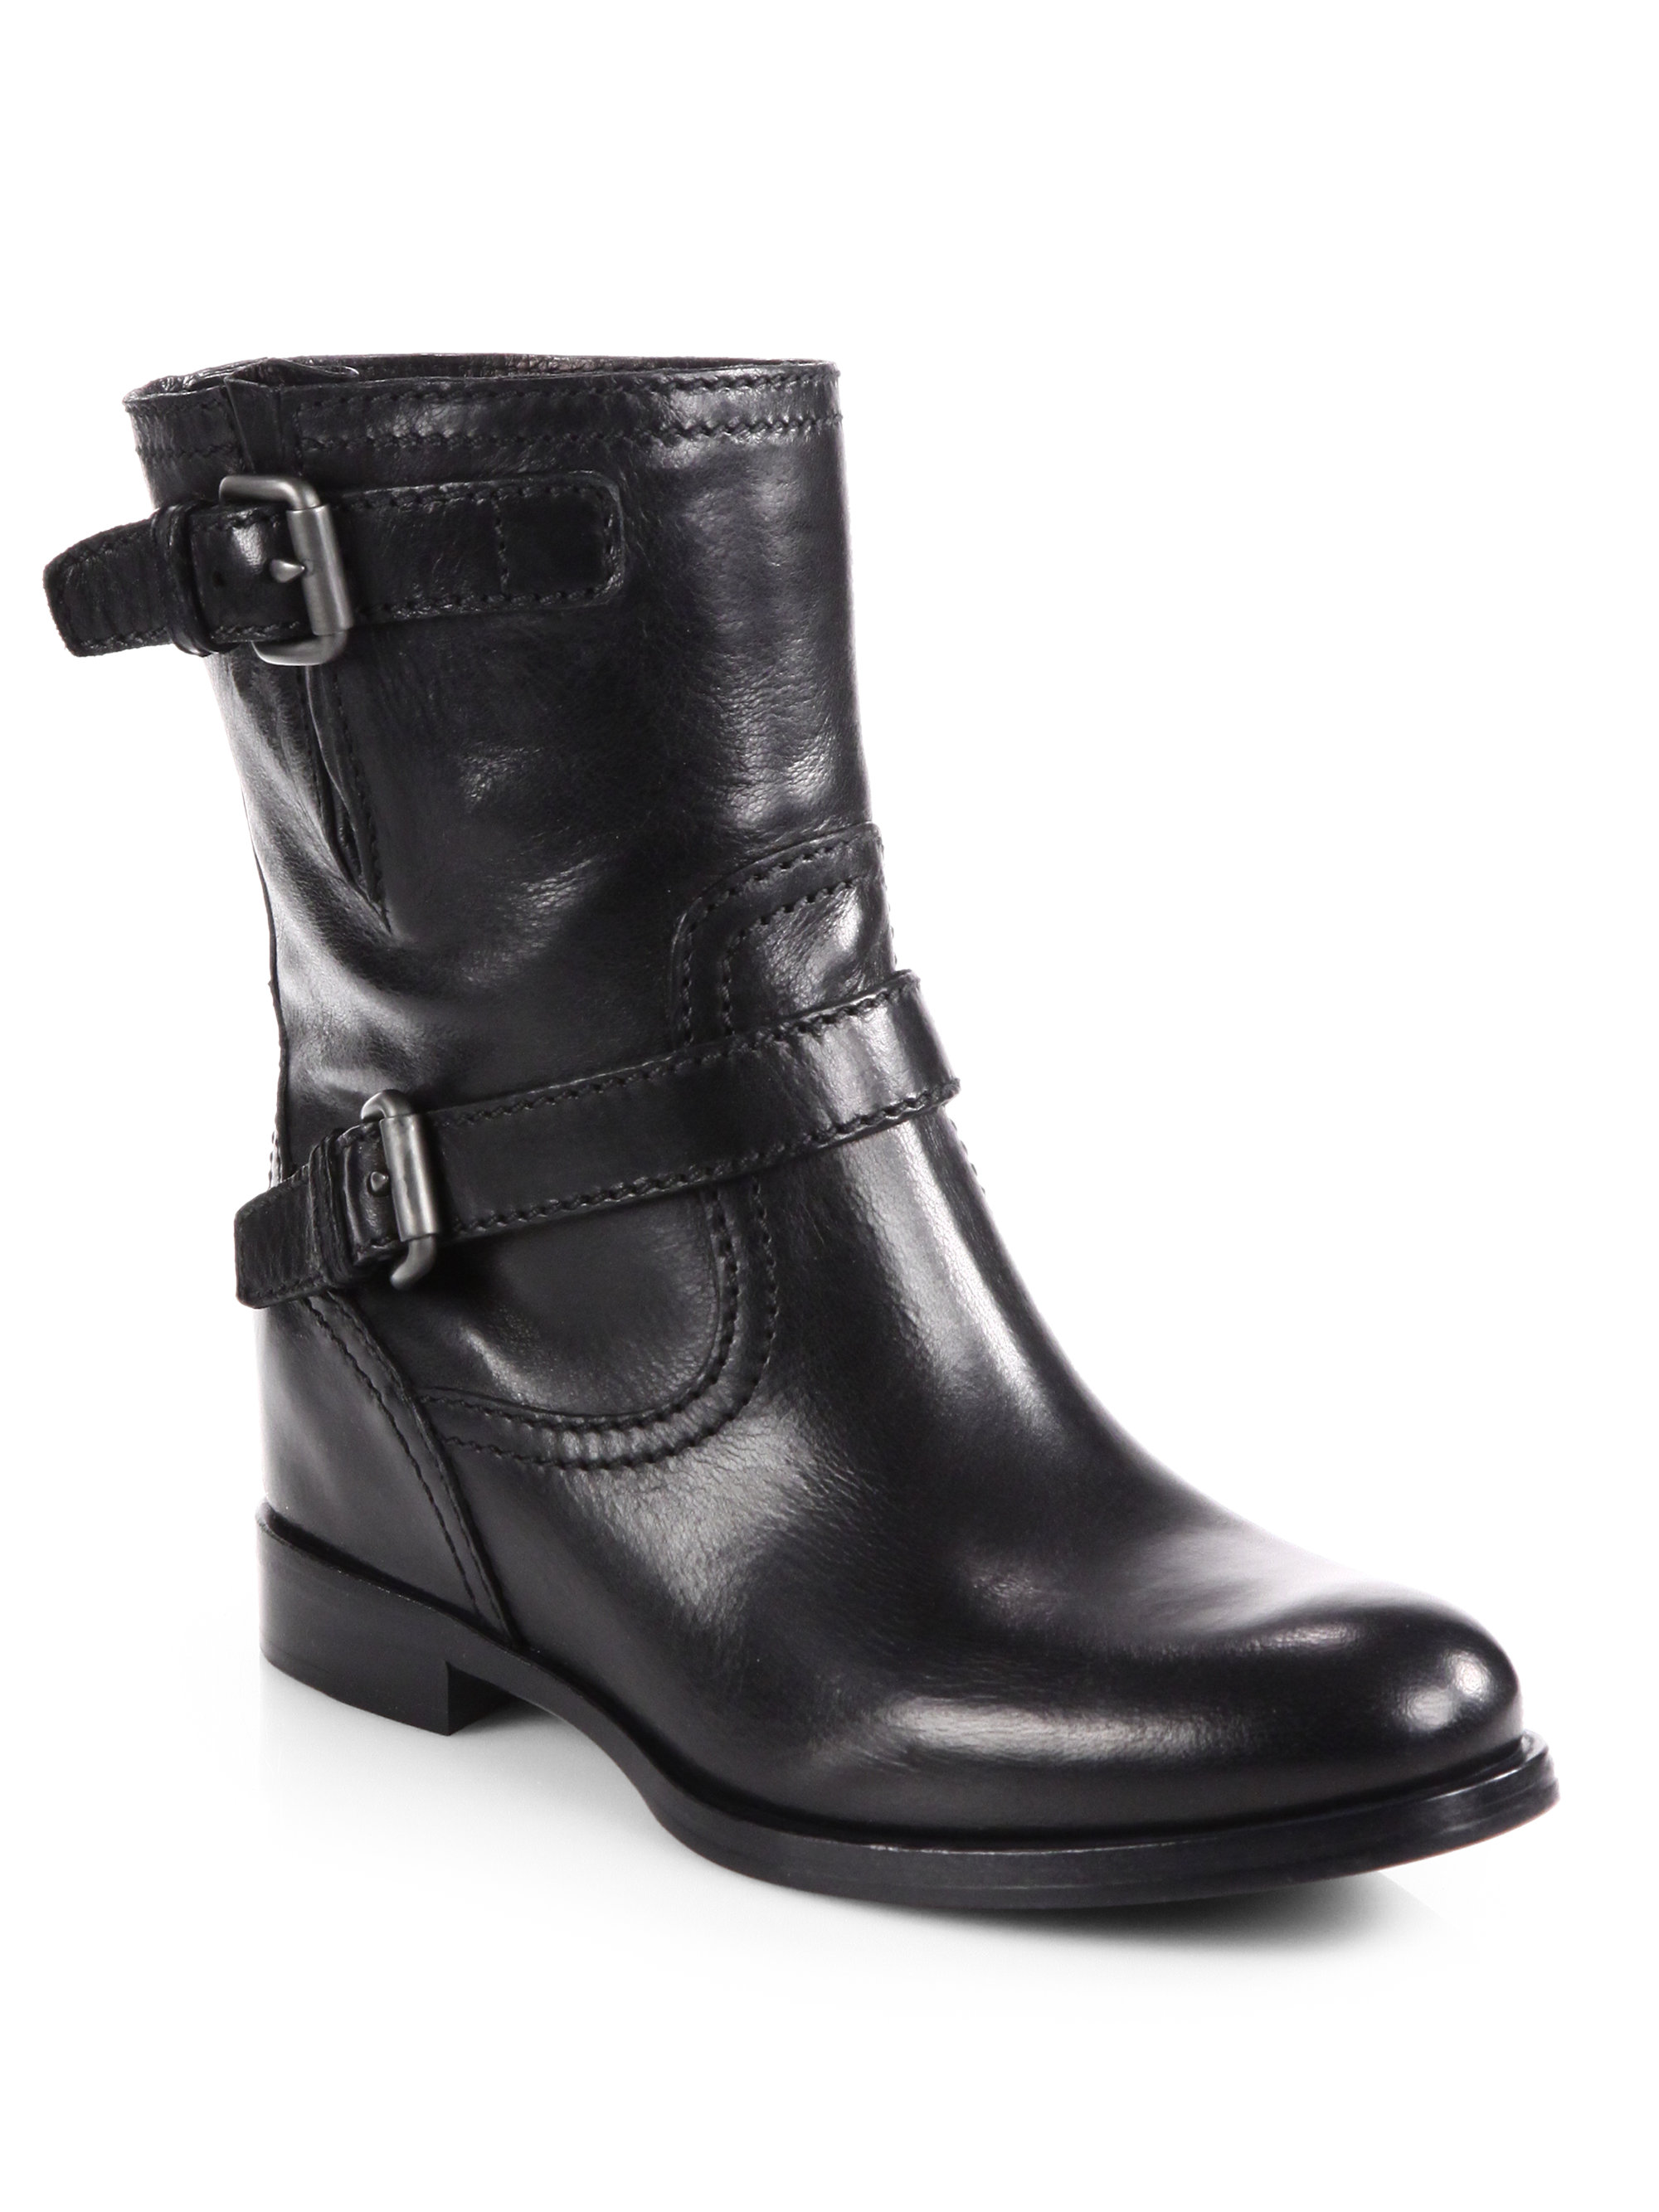 Prada Leather Double Buckle Motorcycle Boots in Black (nero-black) | Lyst